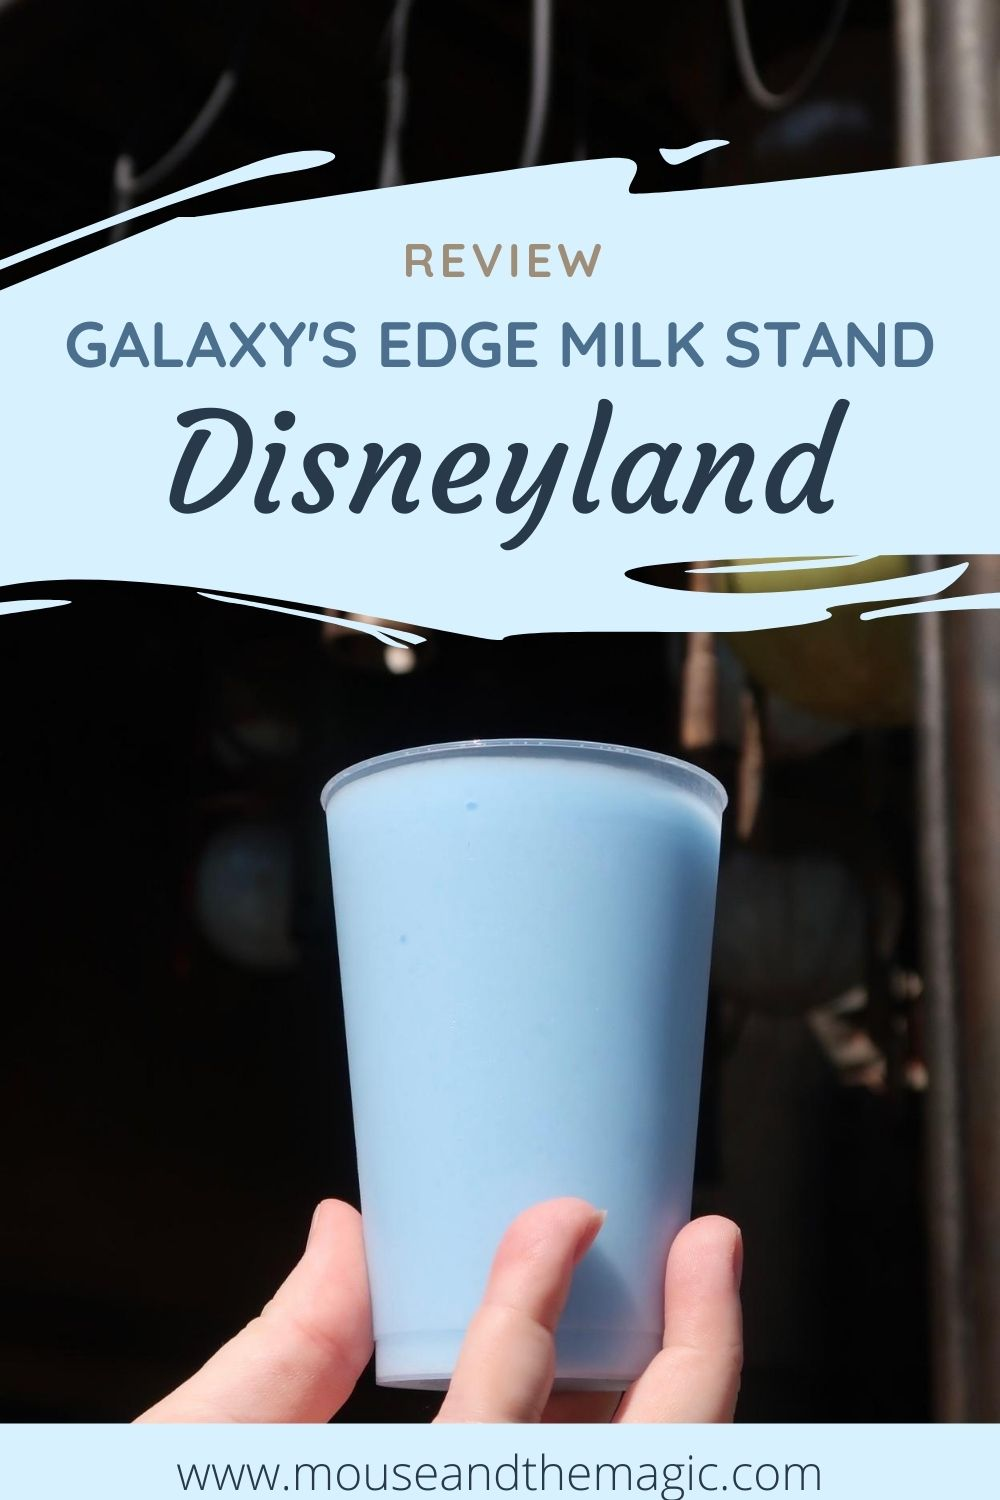 Galaxy's Edge Milk Stand at Disneyland